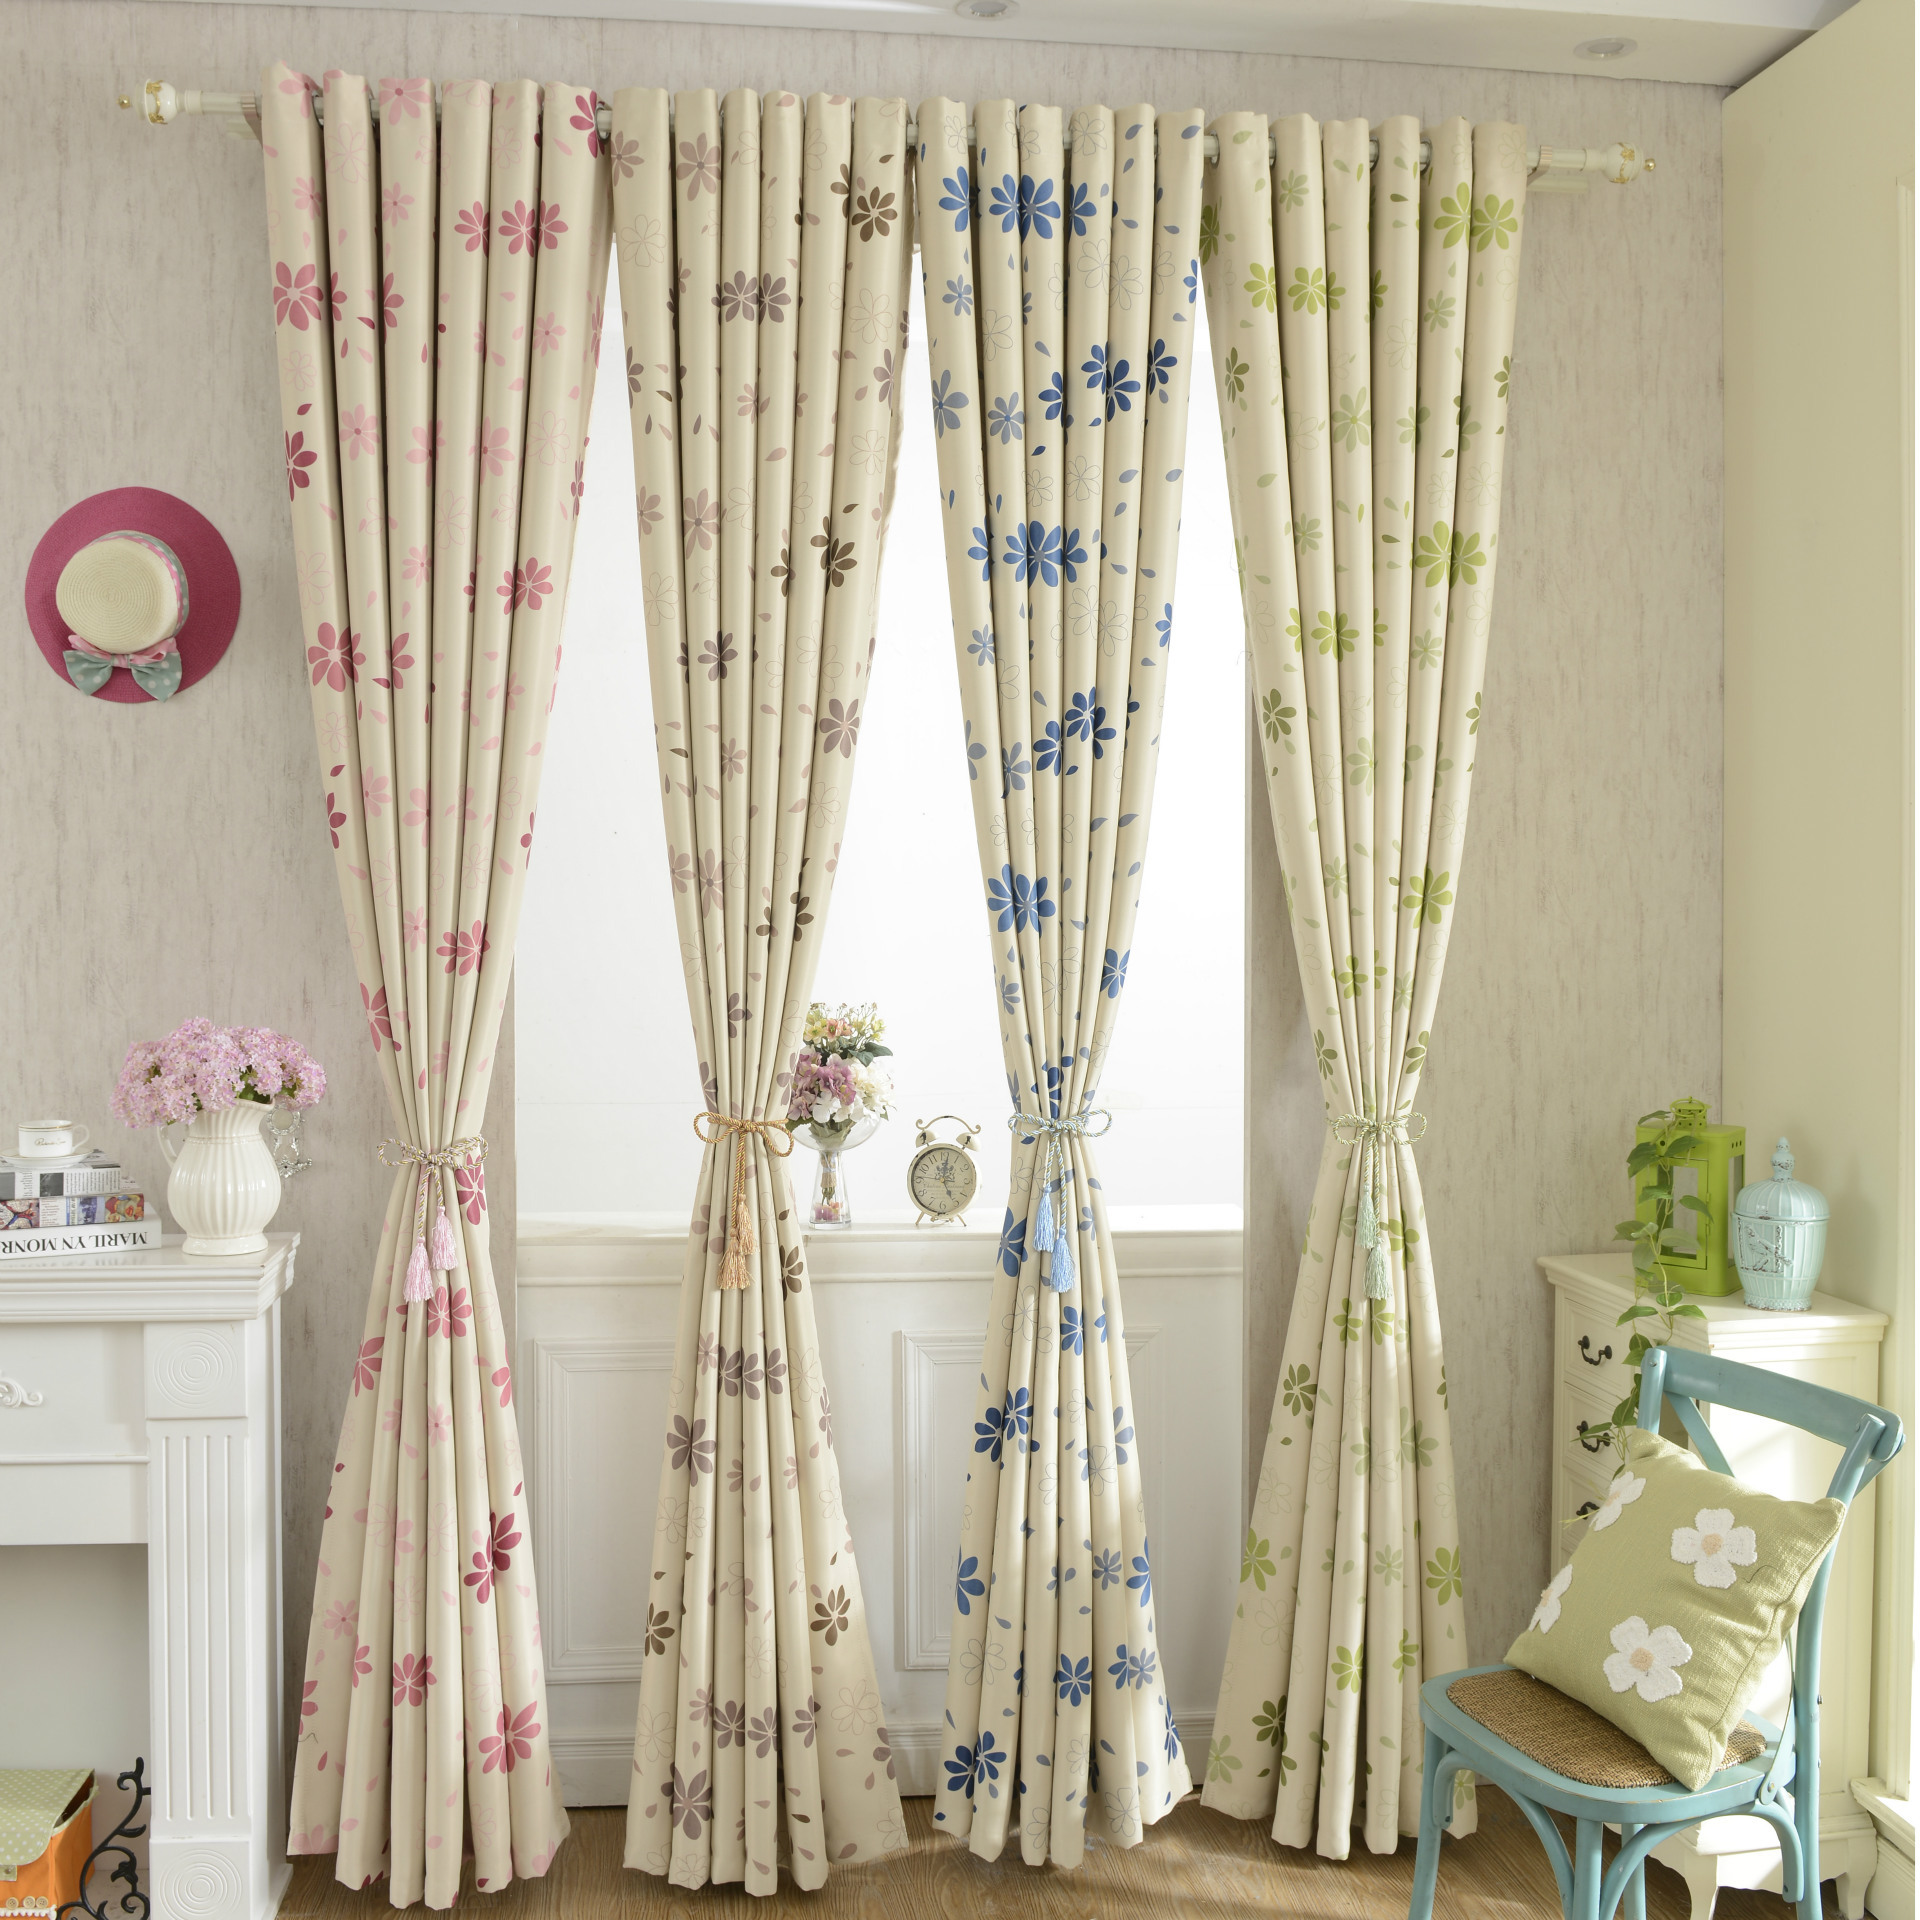 Latest Curtain Designs For Bedroom Popular Latest Curtains Buy Cheap Latest Curtains Lots From China